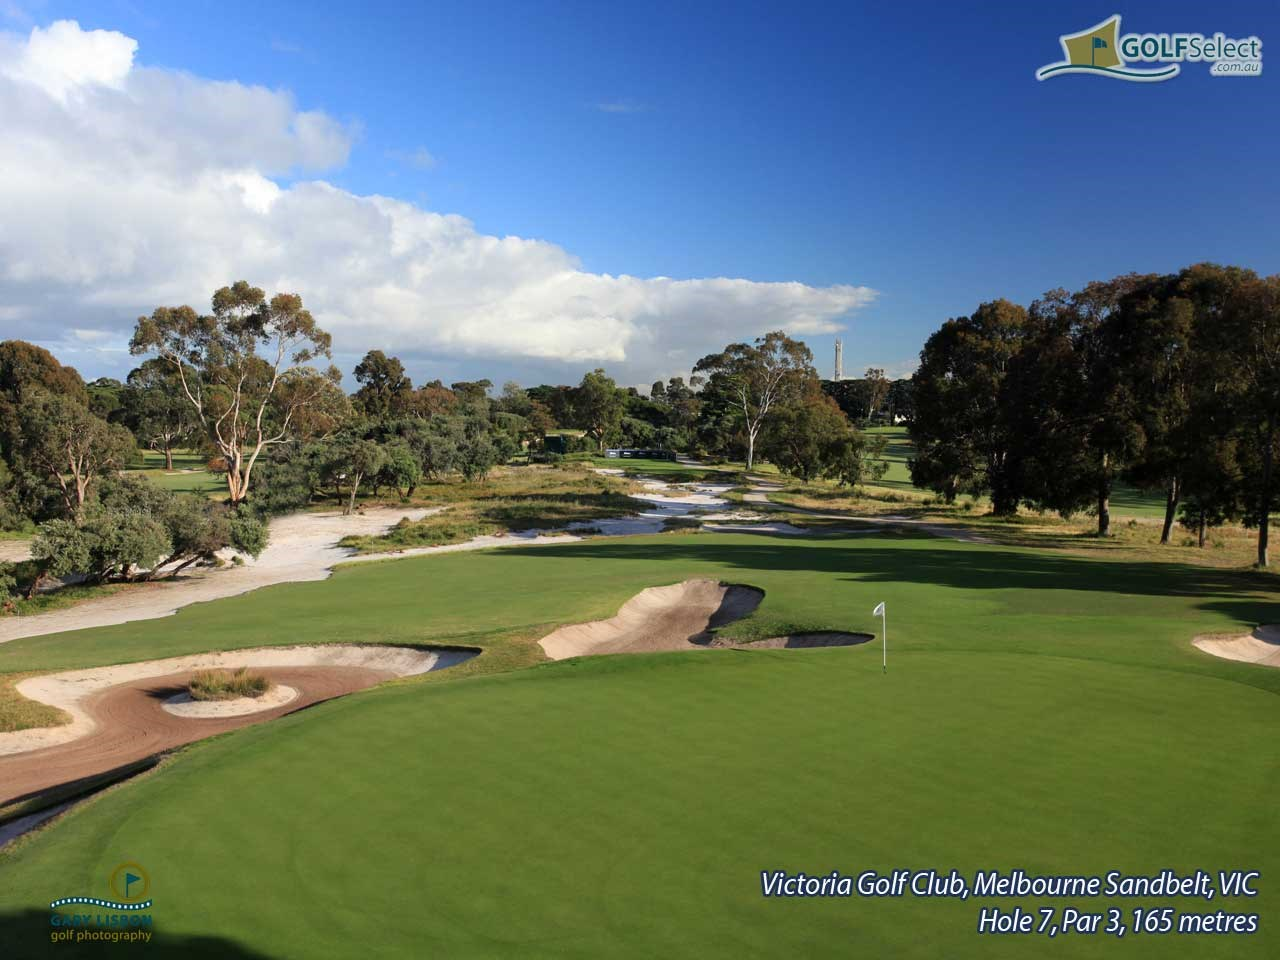 Victoria Golf Club Hole 7, Par 3, 165 metres